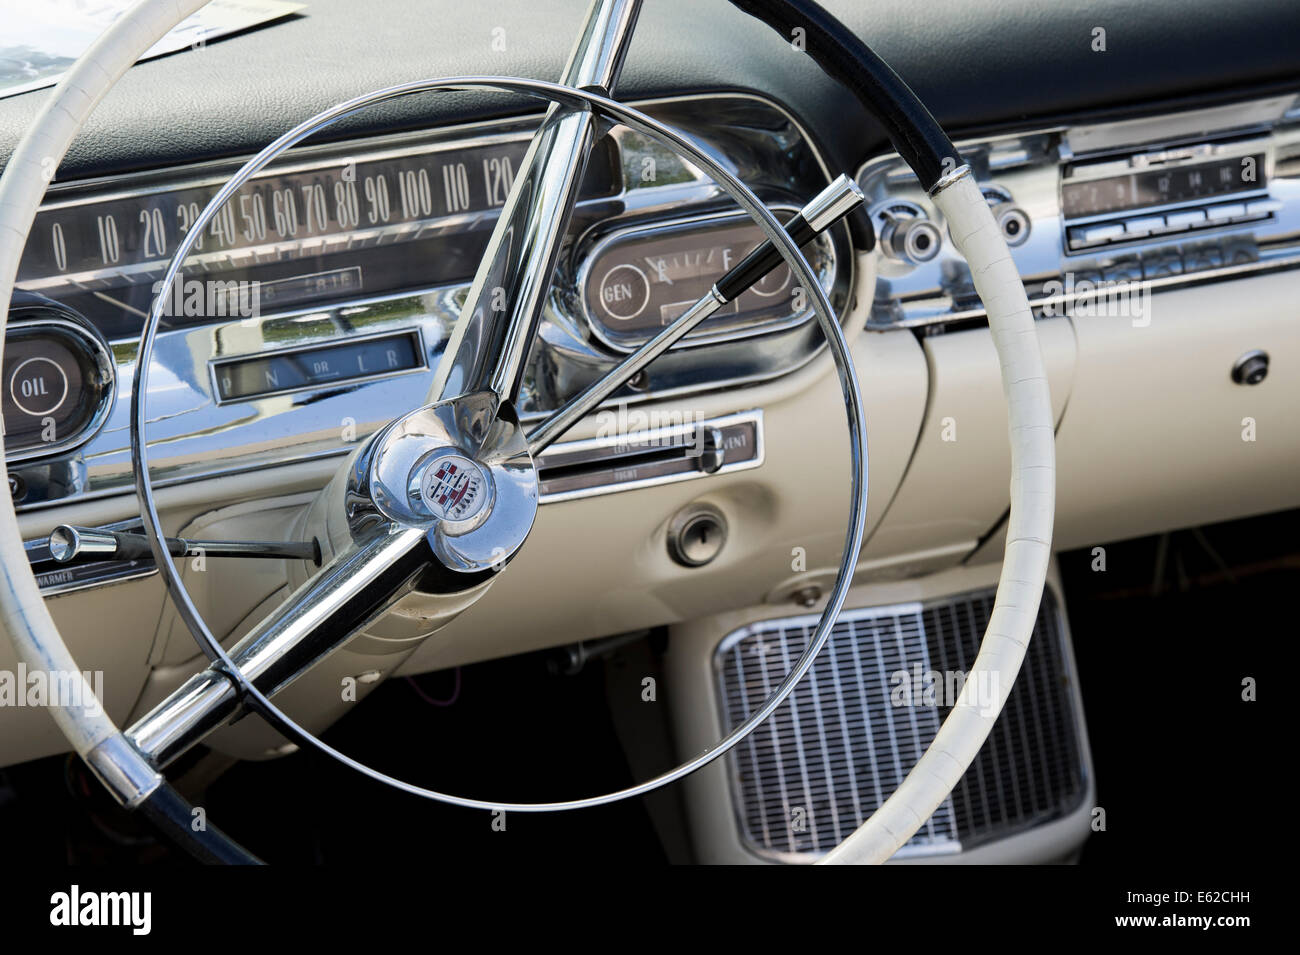 1950s Cadillac Dashboard And Interior Abstract Classic